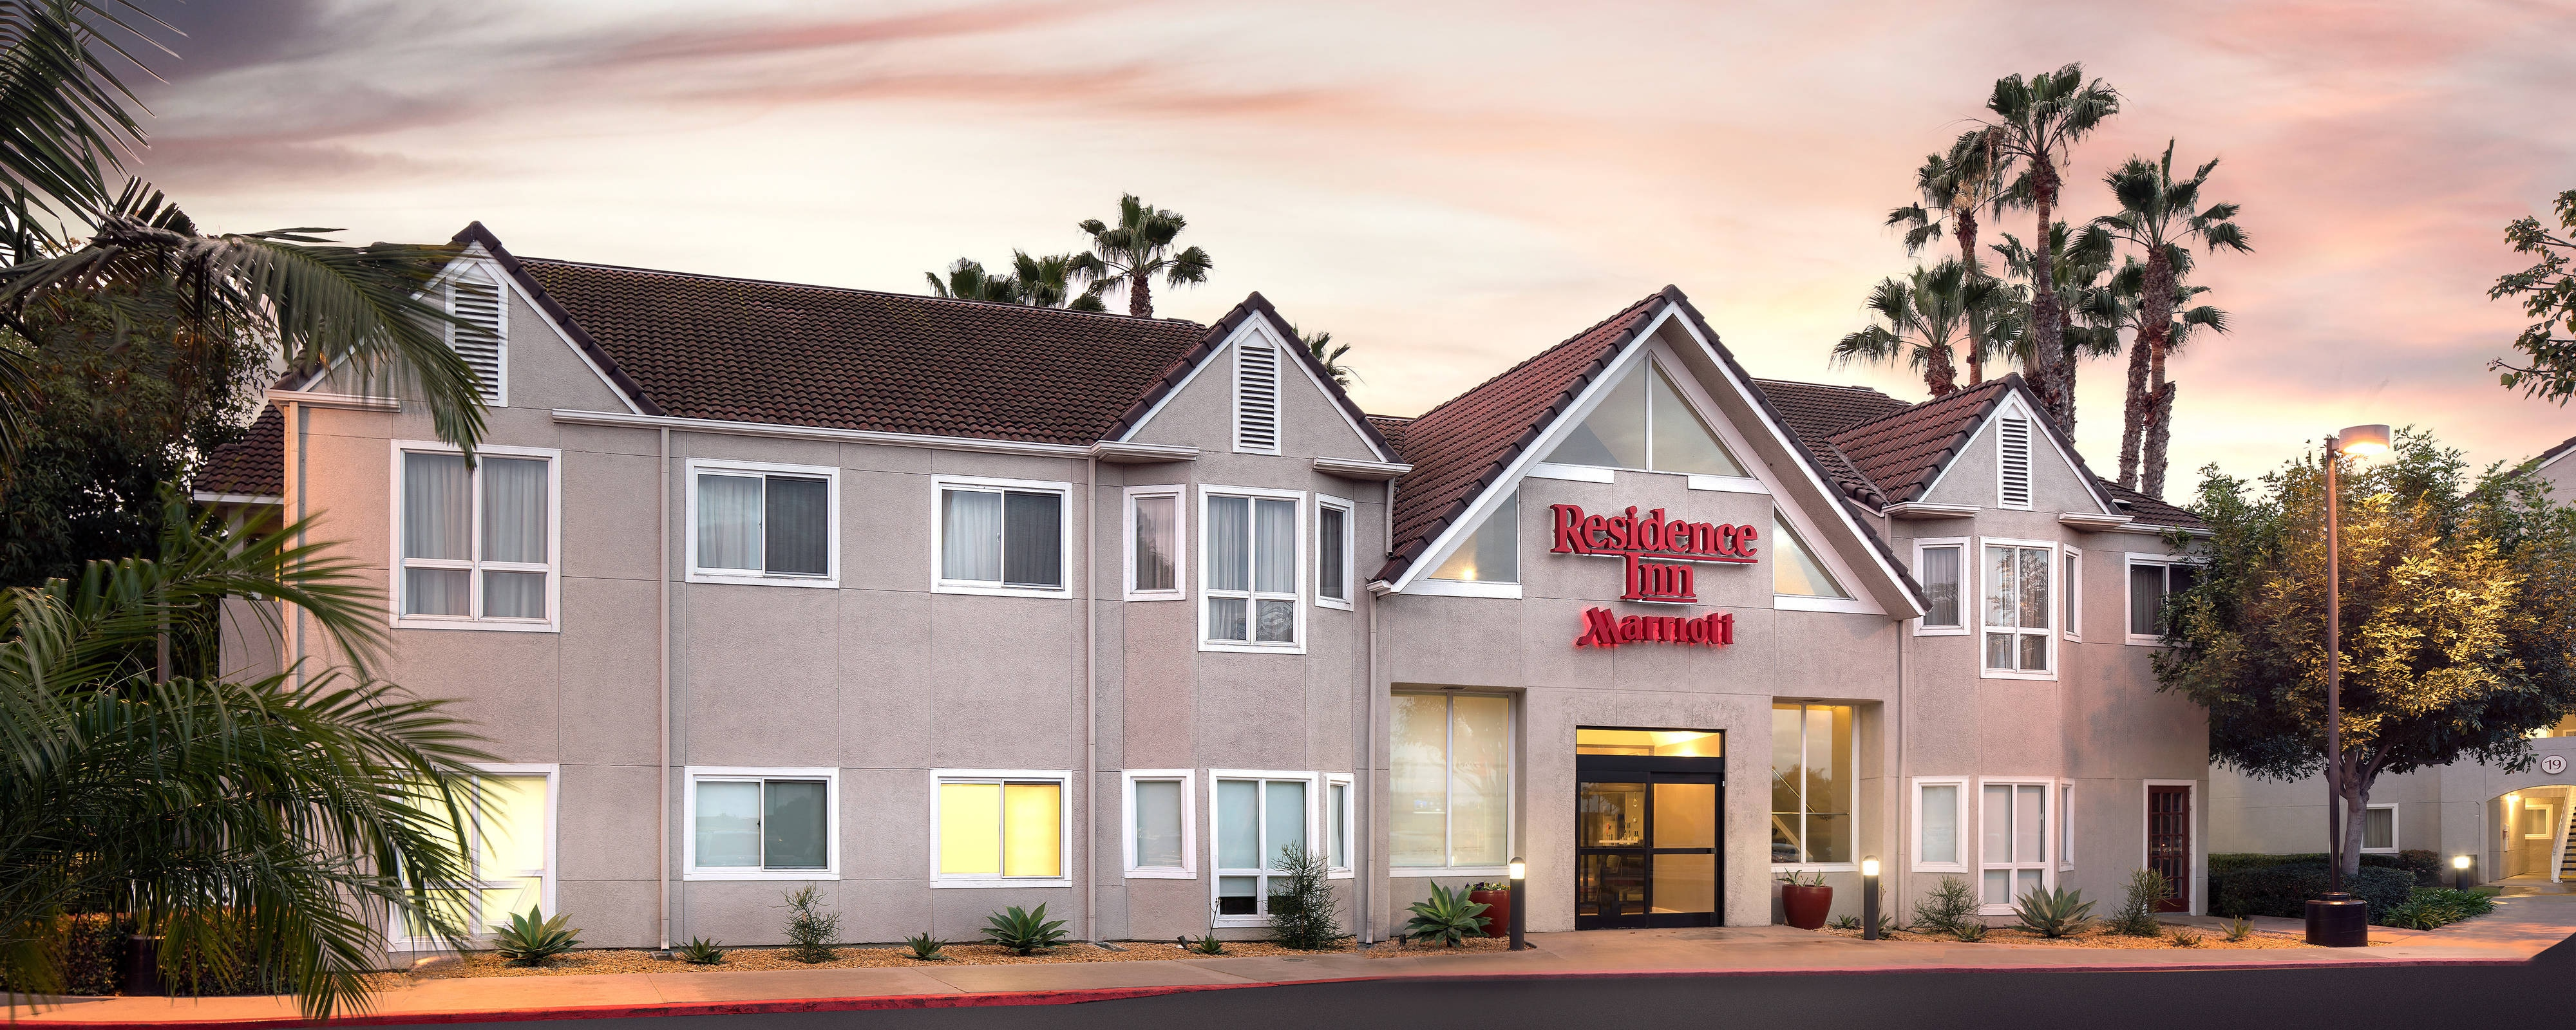 Hotels Near Fountain Valley, CA | Residence Inn Huntington Beach Fountain  Valley